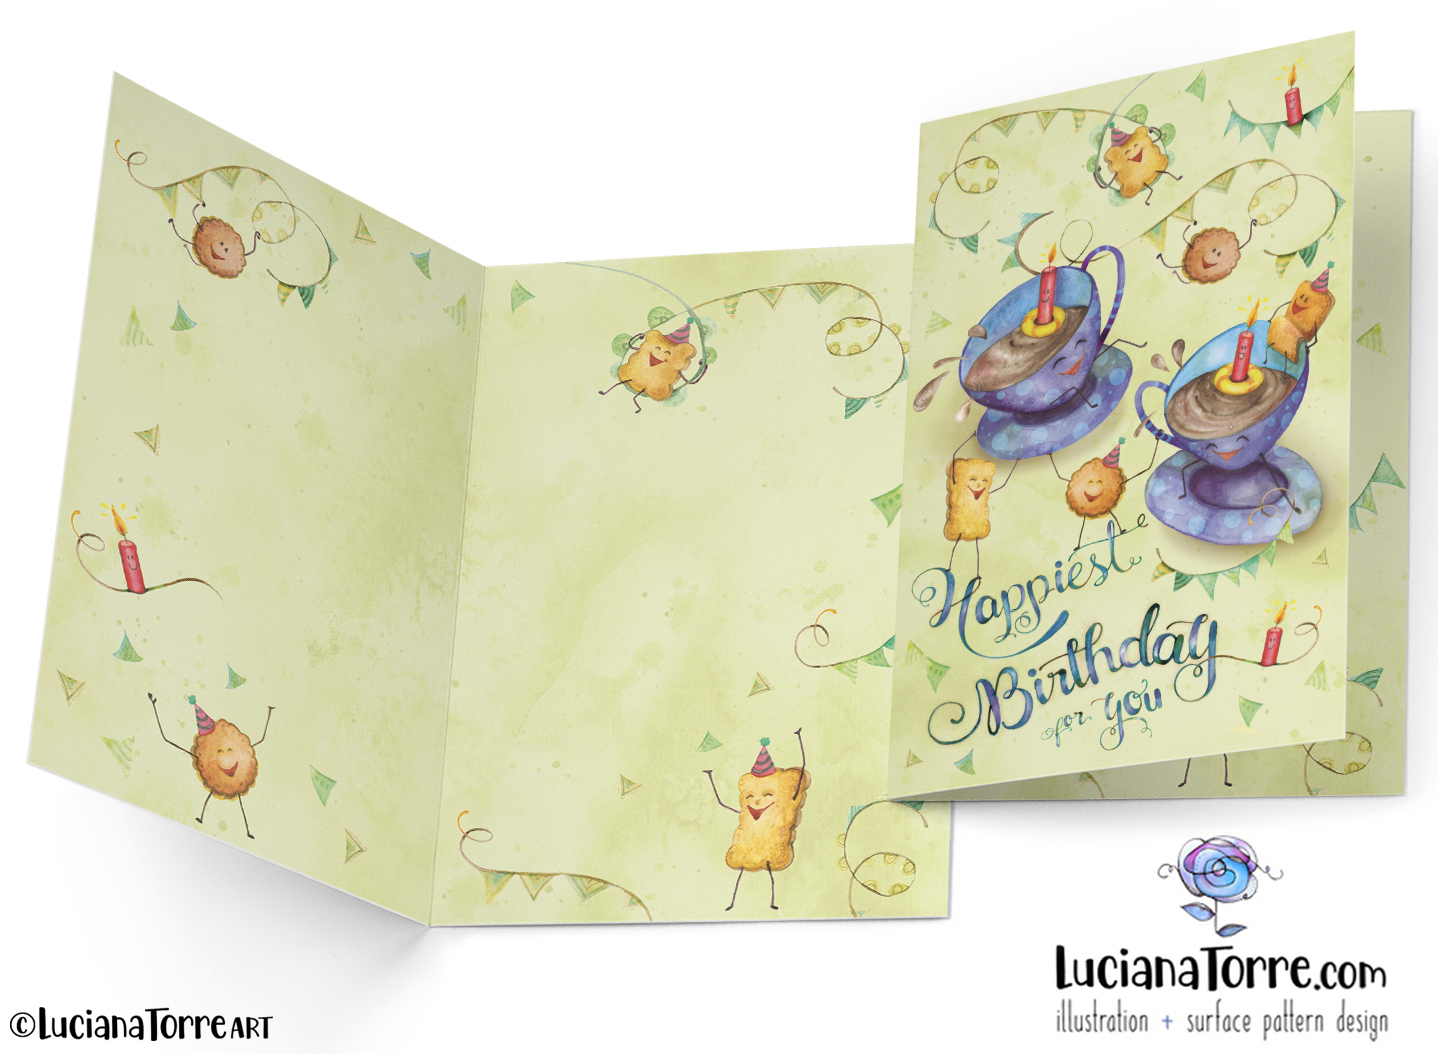 Luciana Torre Art greeting card design for licensing